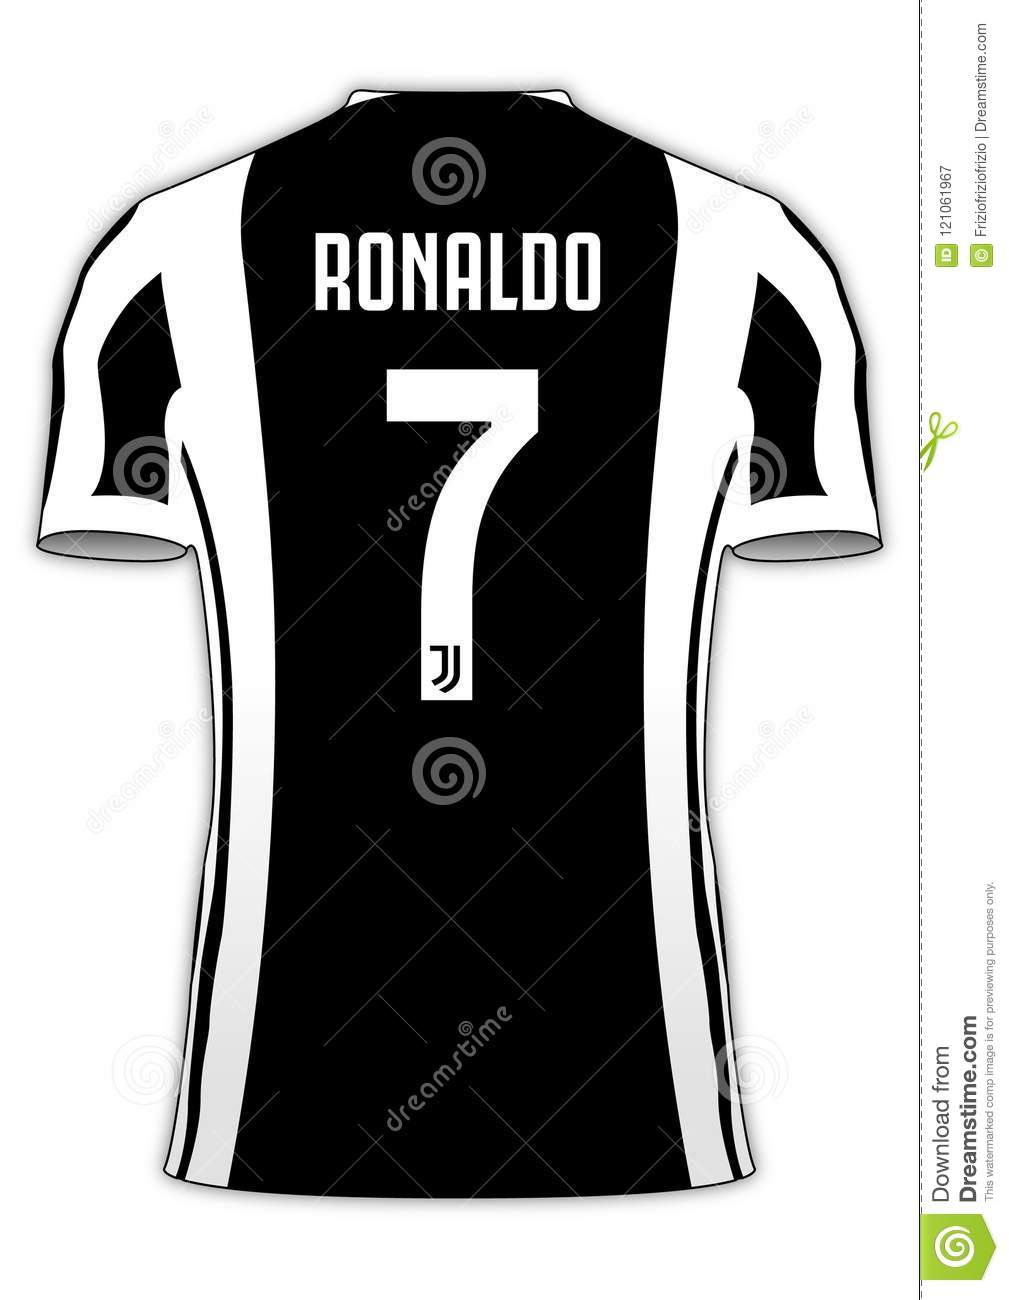 08e152ad8d9 Cristiano Ronaldo Juventus Football Team Jersey Number 7 Editorial ...